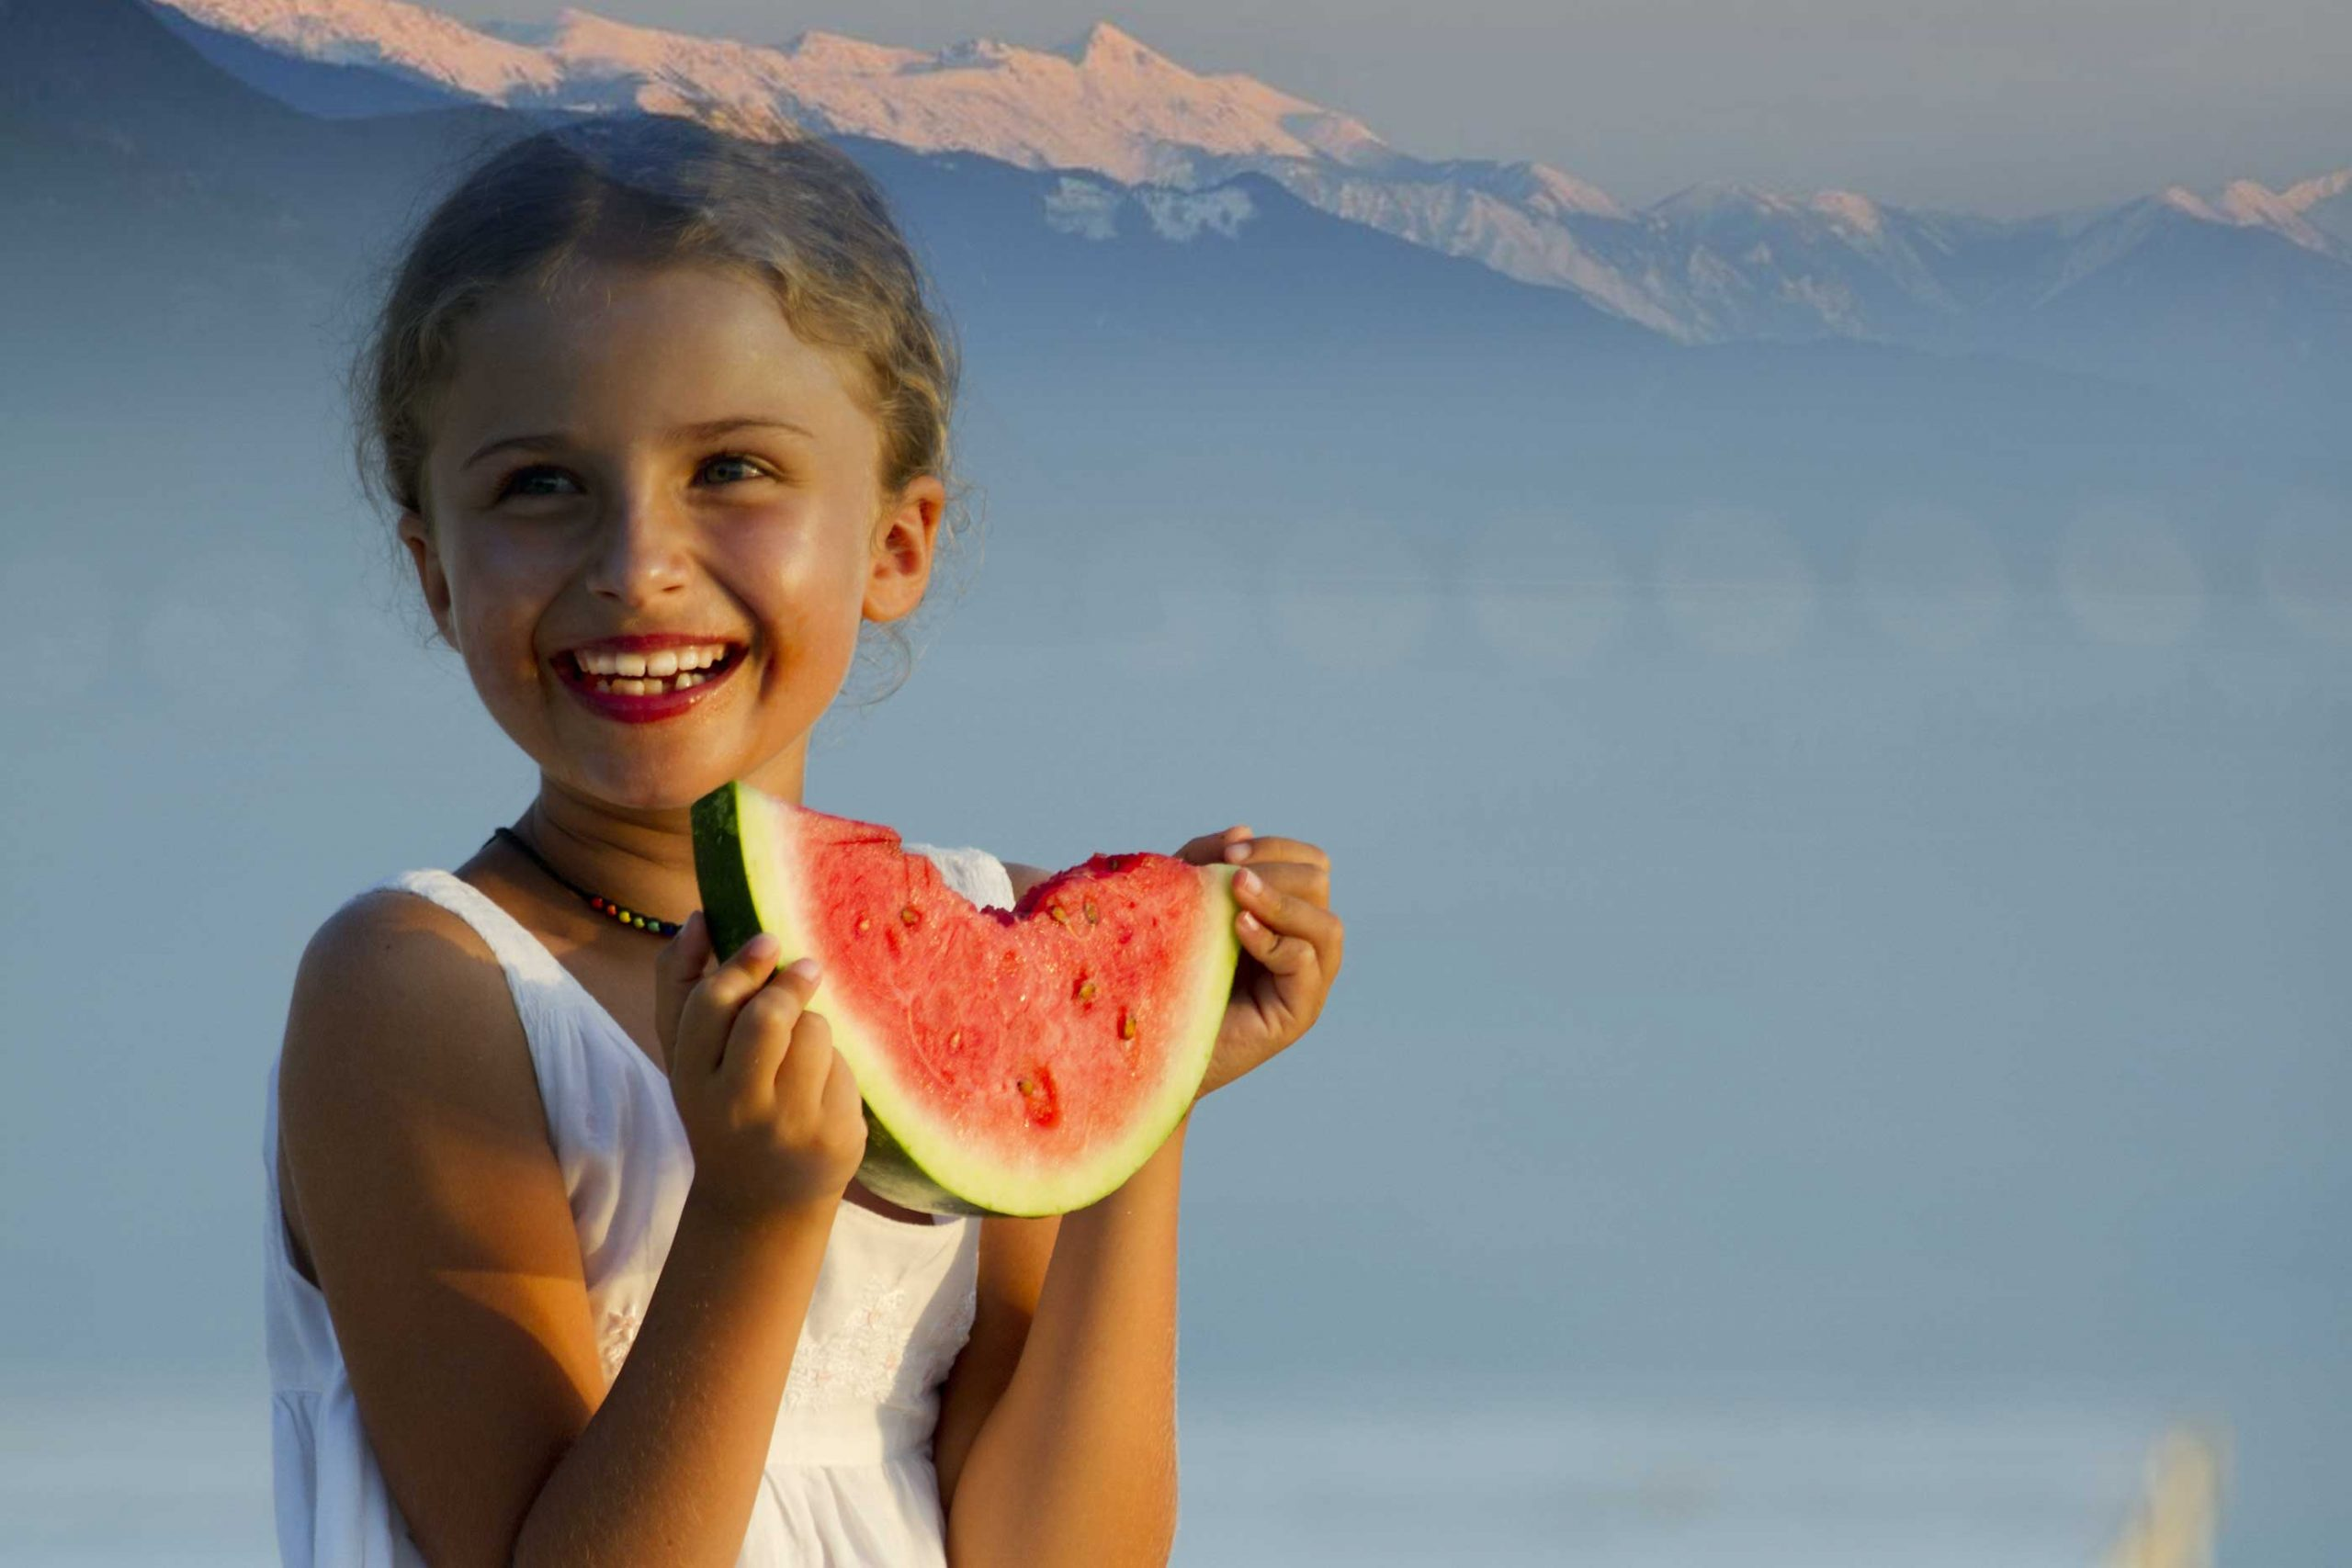 Watermelon by the lake - just south of Invermere BC